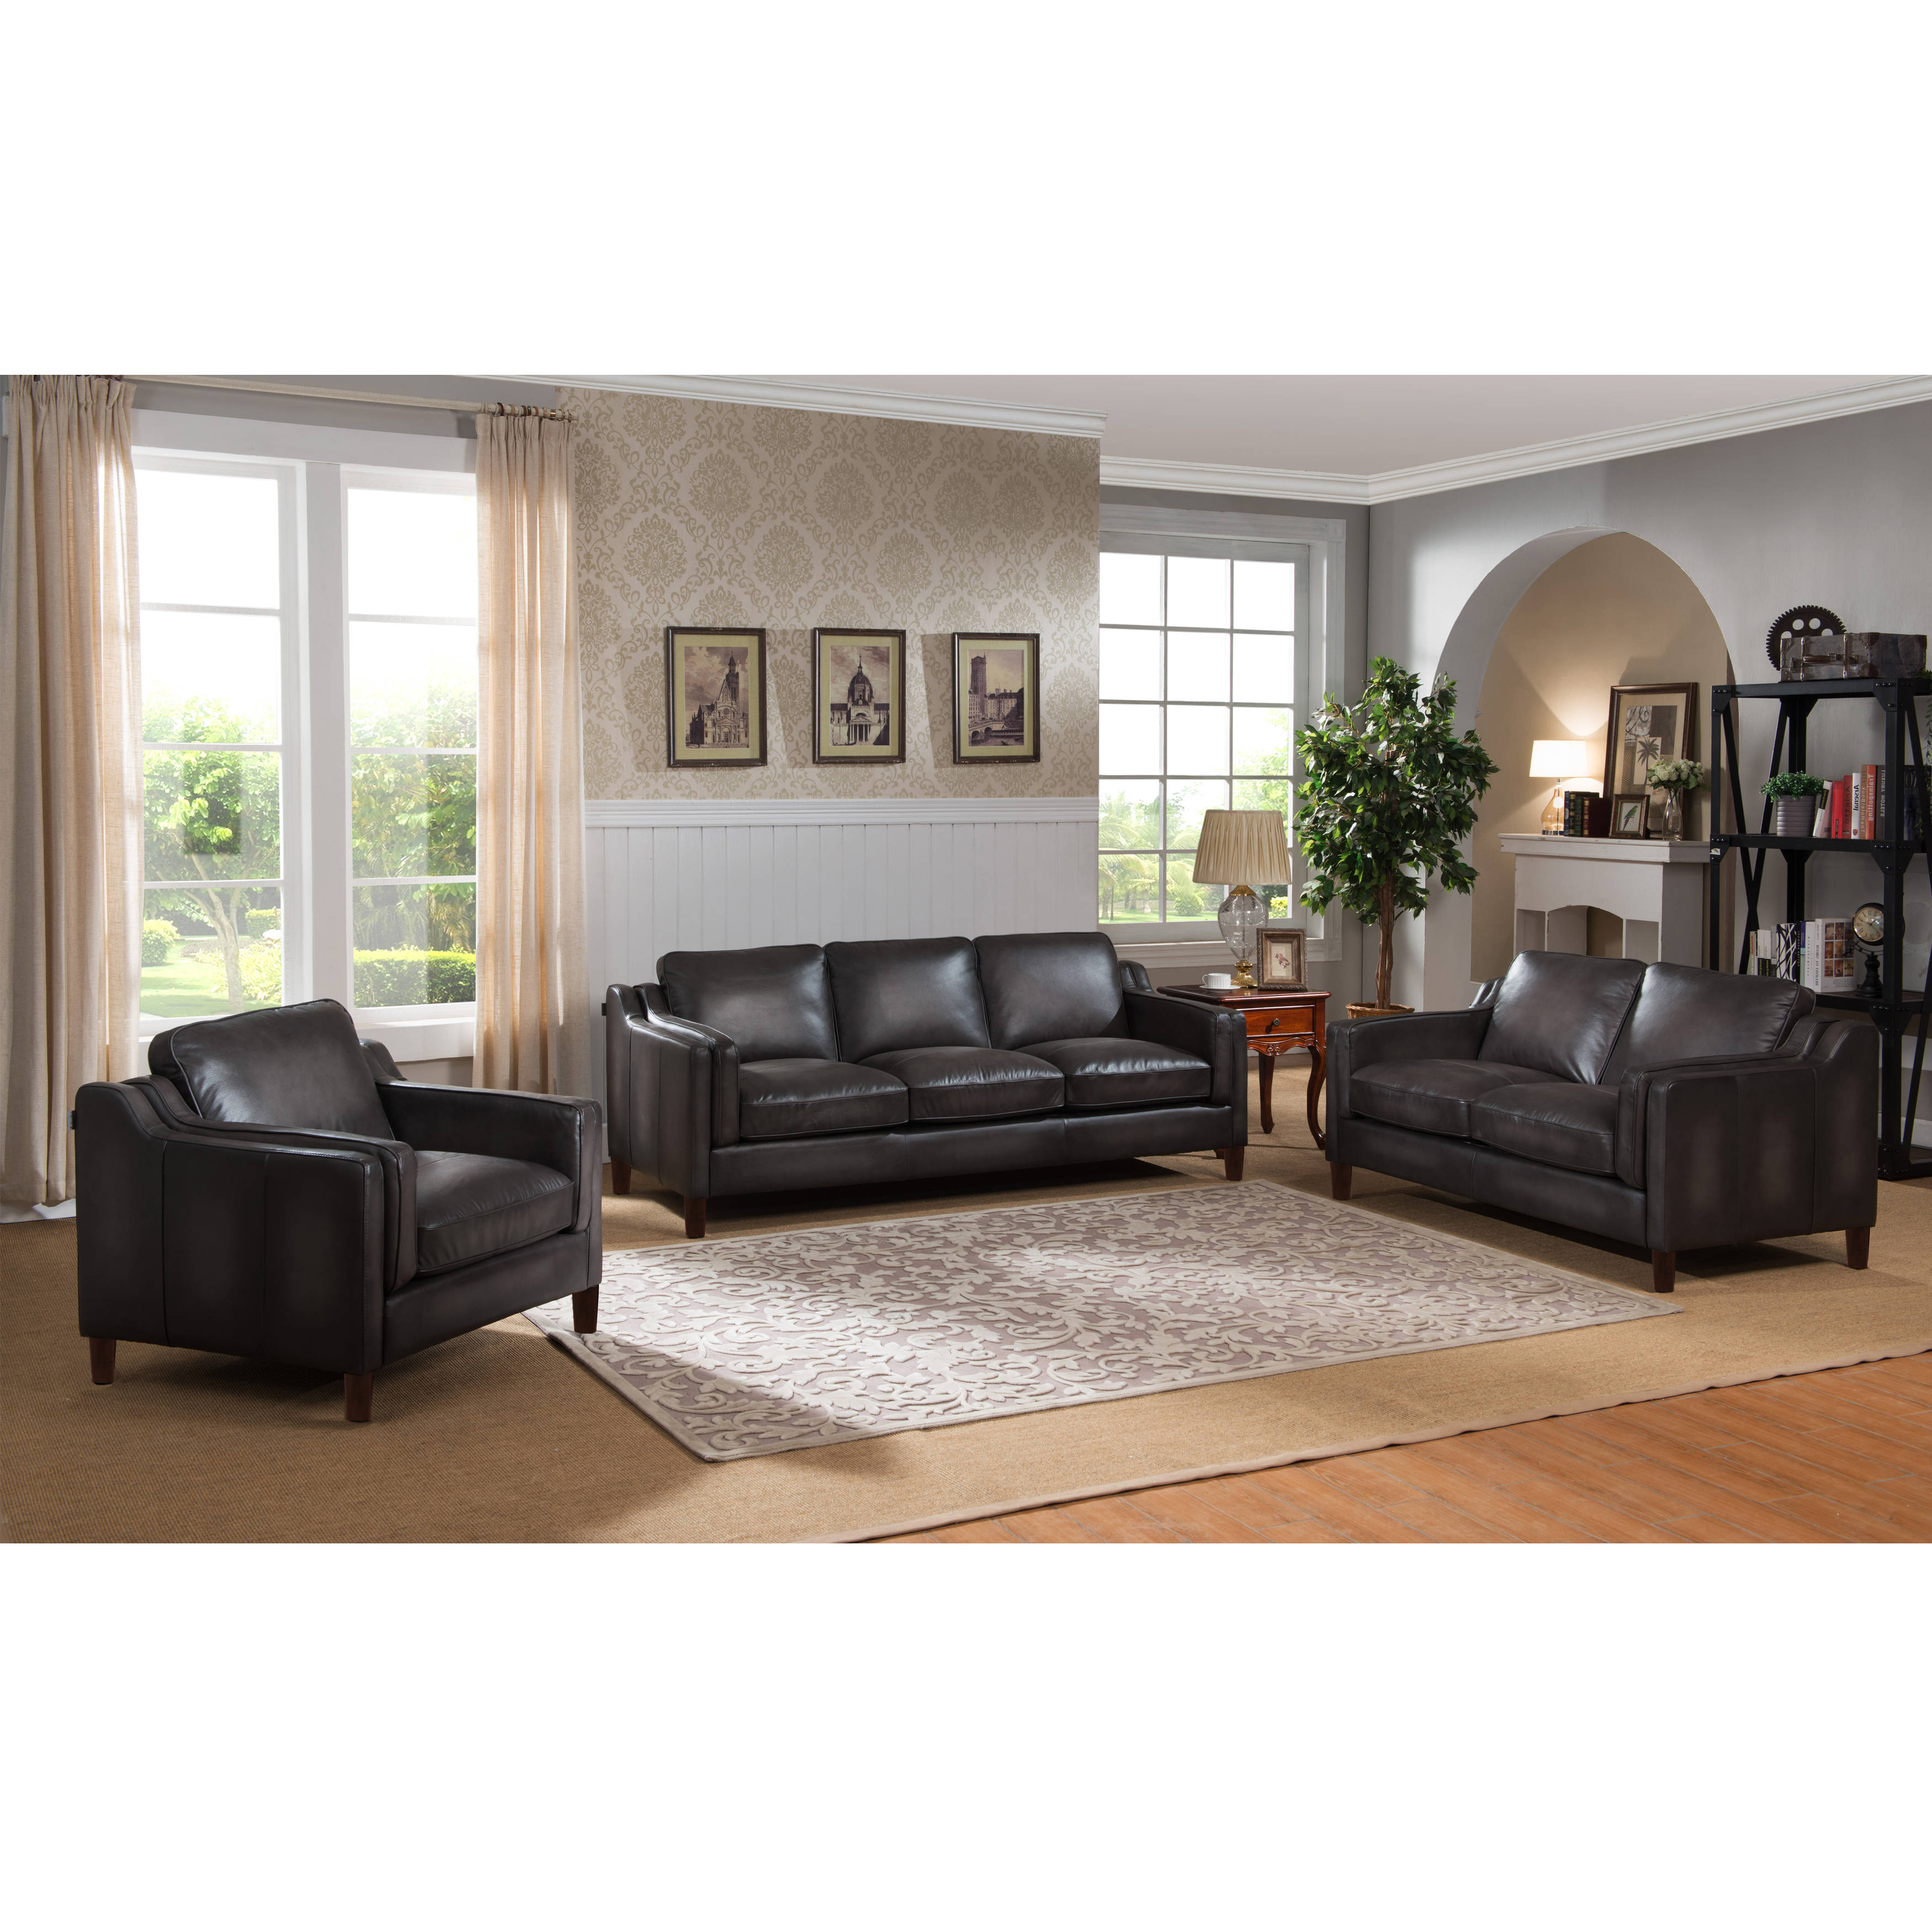 Amax leather ballari weathered grey 3pc living room set the classy home